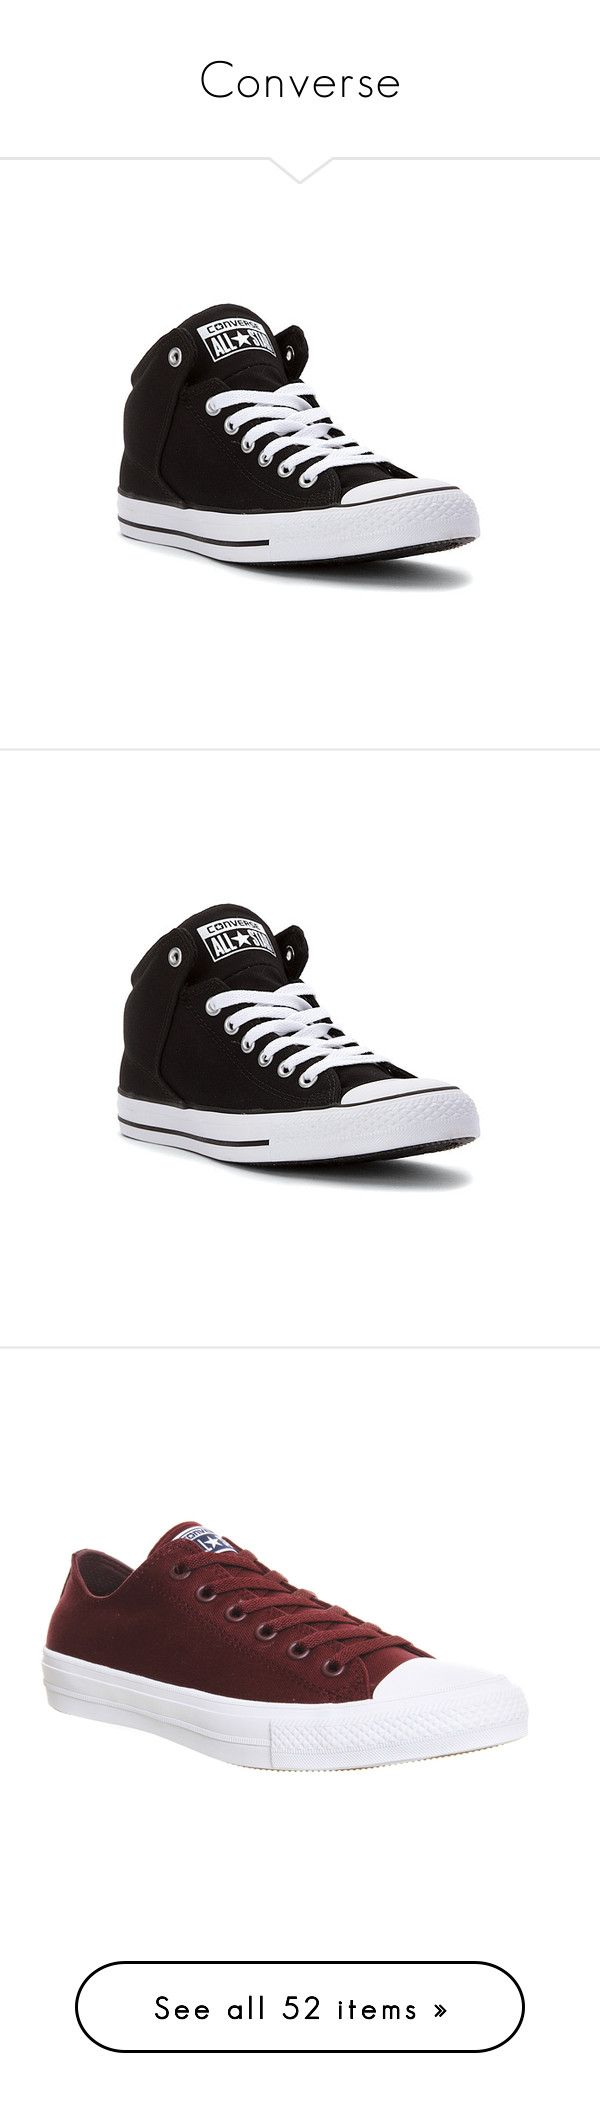 """""""Converse"""" by georgia-lane ❤ liked on Polyvore featuring shoes, sneakers, converse, athletic-inspired, black, black sneakers, black high top shoes, black hi tops, high top sneakers and black high top trainers"""